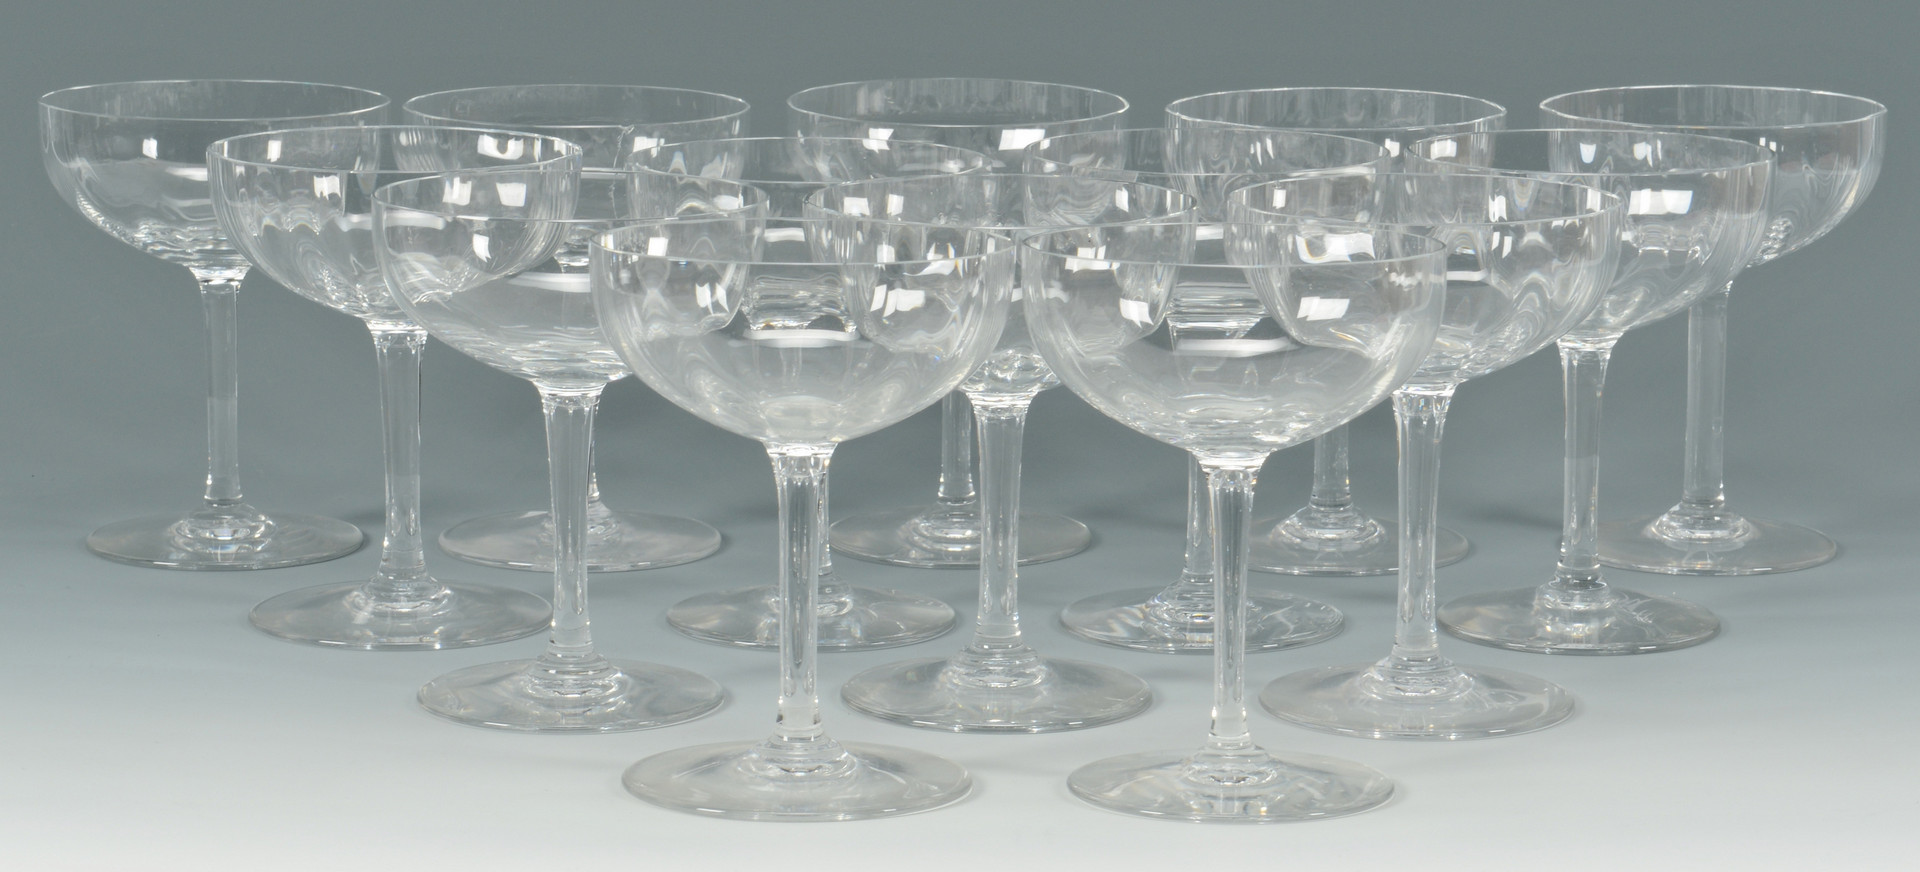 Lot 876: 14 pcs Baccarat Montaigne Pattern Stemware